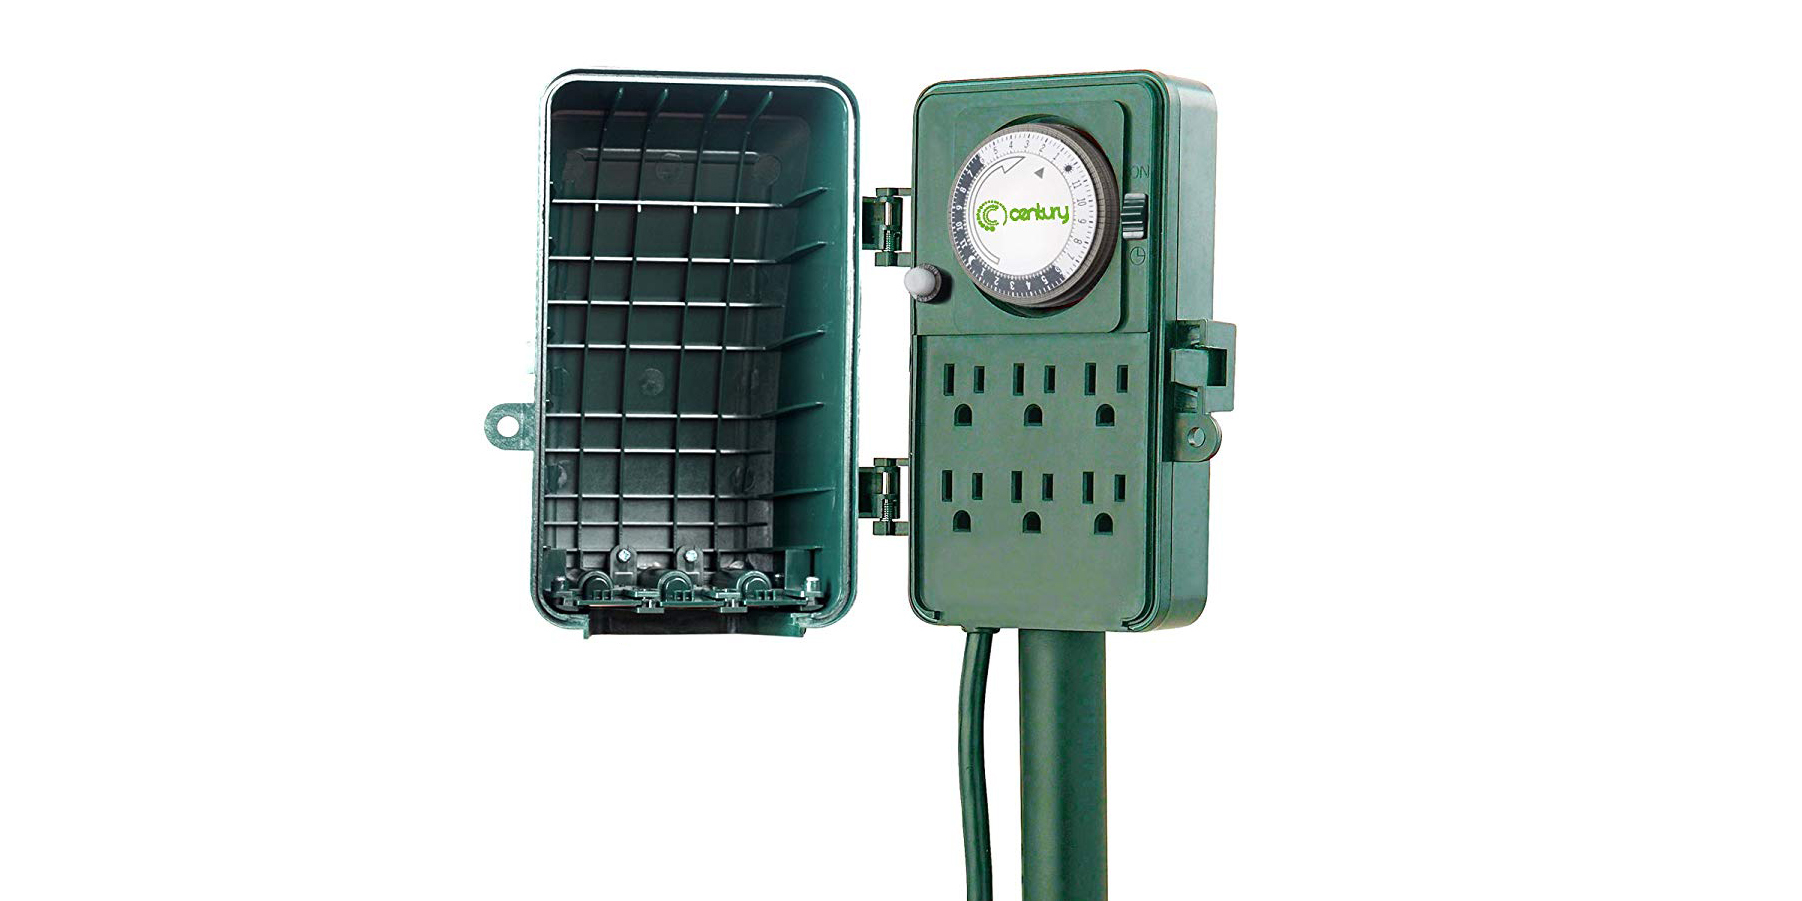 24 Outlet Green Deals 24 Hour Waterproof 6 Outlet Outdoor Timer 15 More